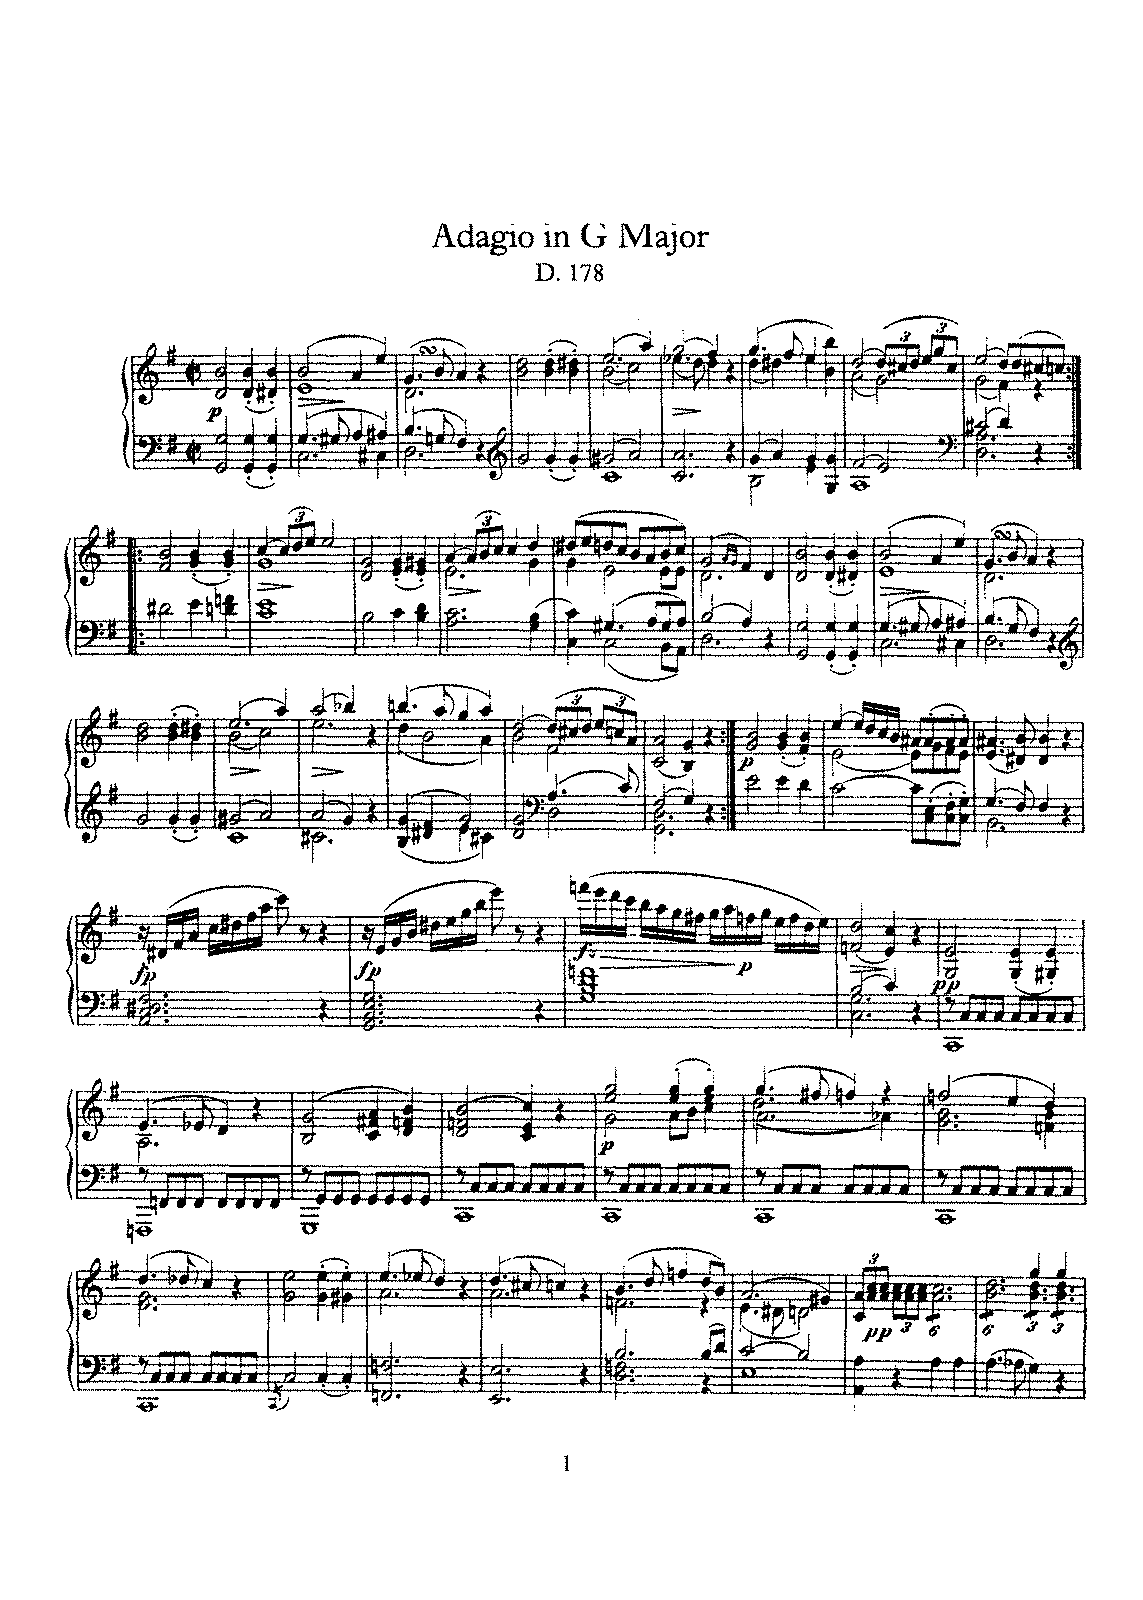 Schubert - D.178 - Adagio in G Major.pdf